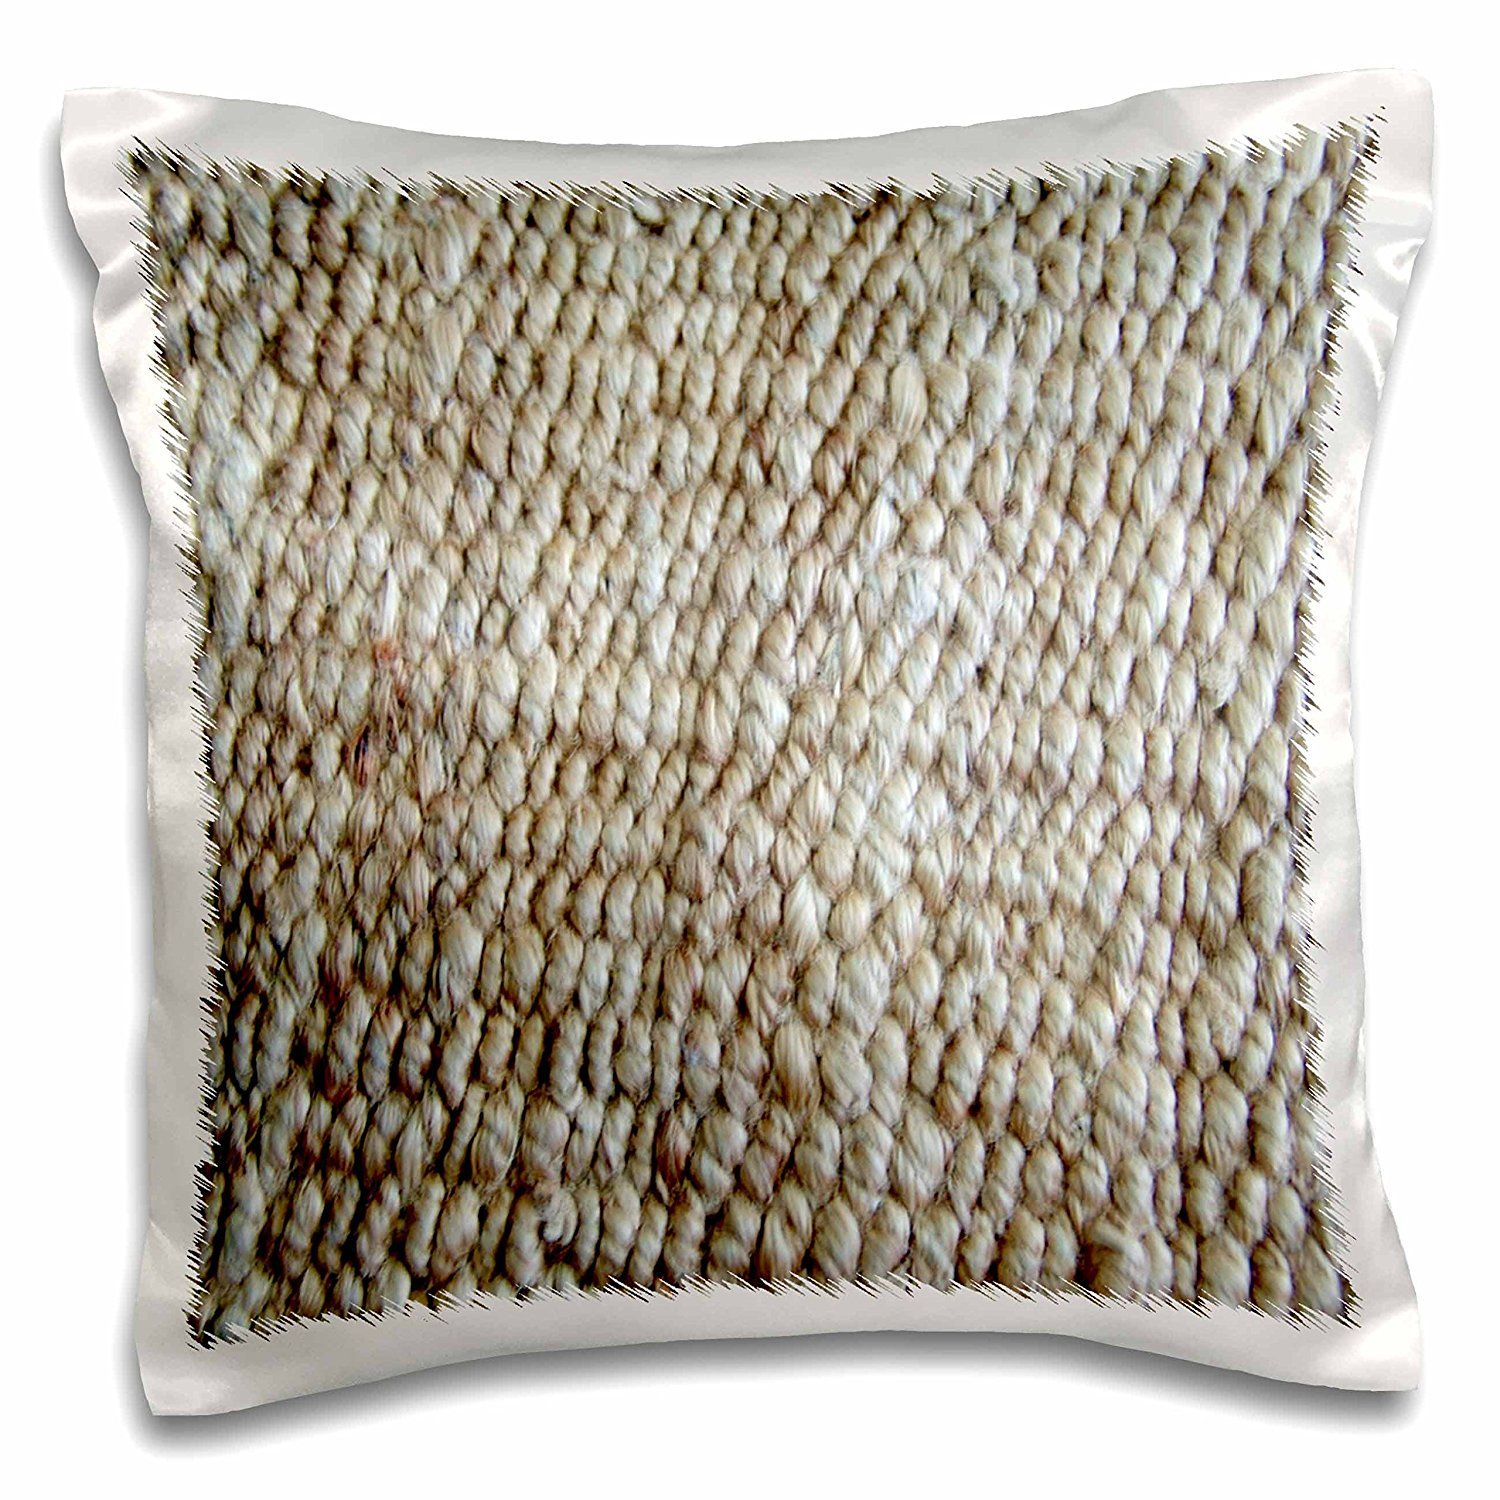 Amazon.com: Florene Designer Texture - Textured Jute - 16x16 inch Pillow Case (pc_45035_1): Home & Kitchen